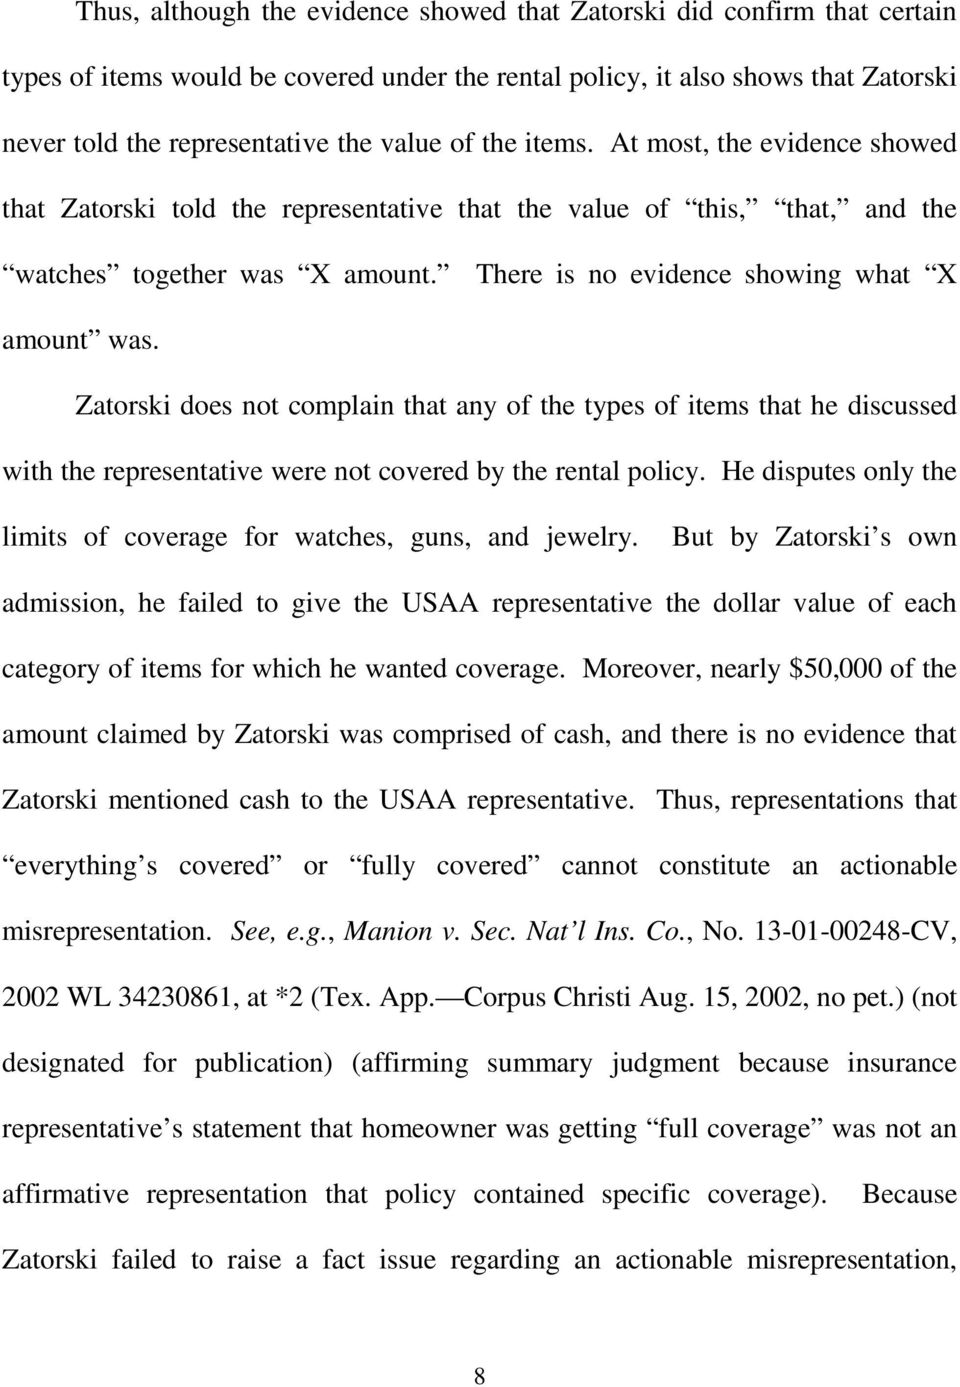 Zatorski does not complain that any of the types of items that he discussed with the representative were not covered by the rental policy.